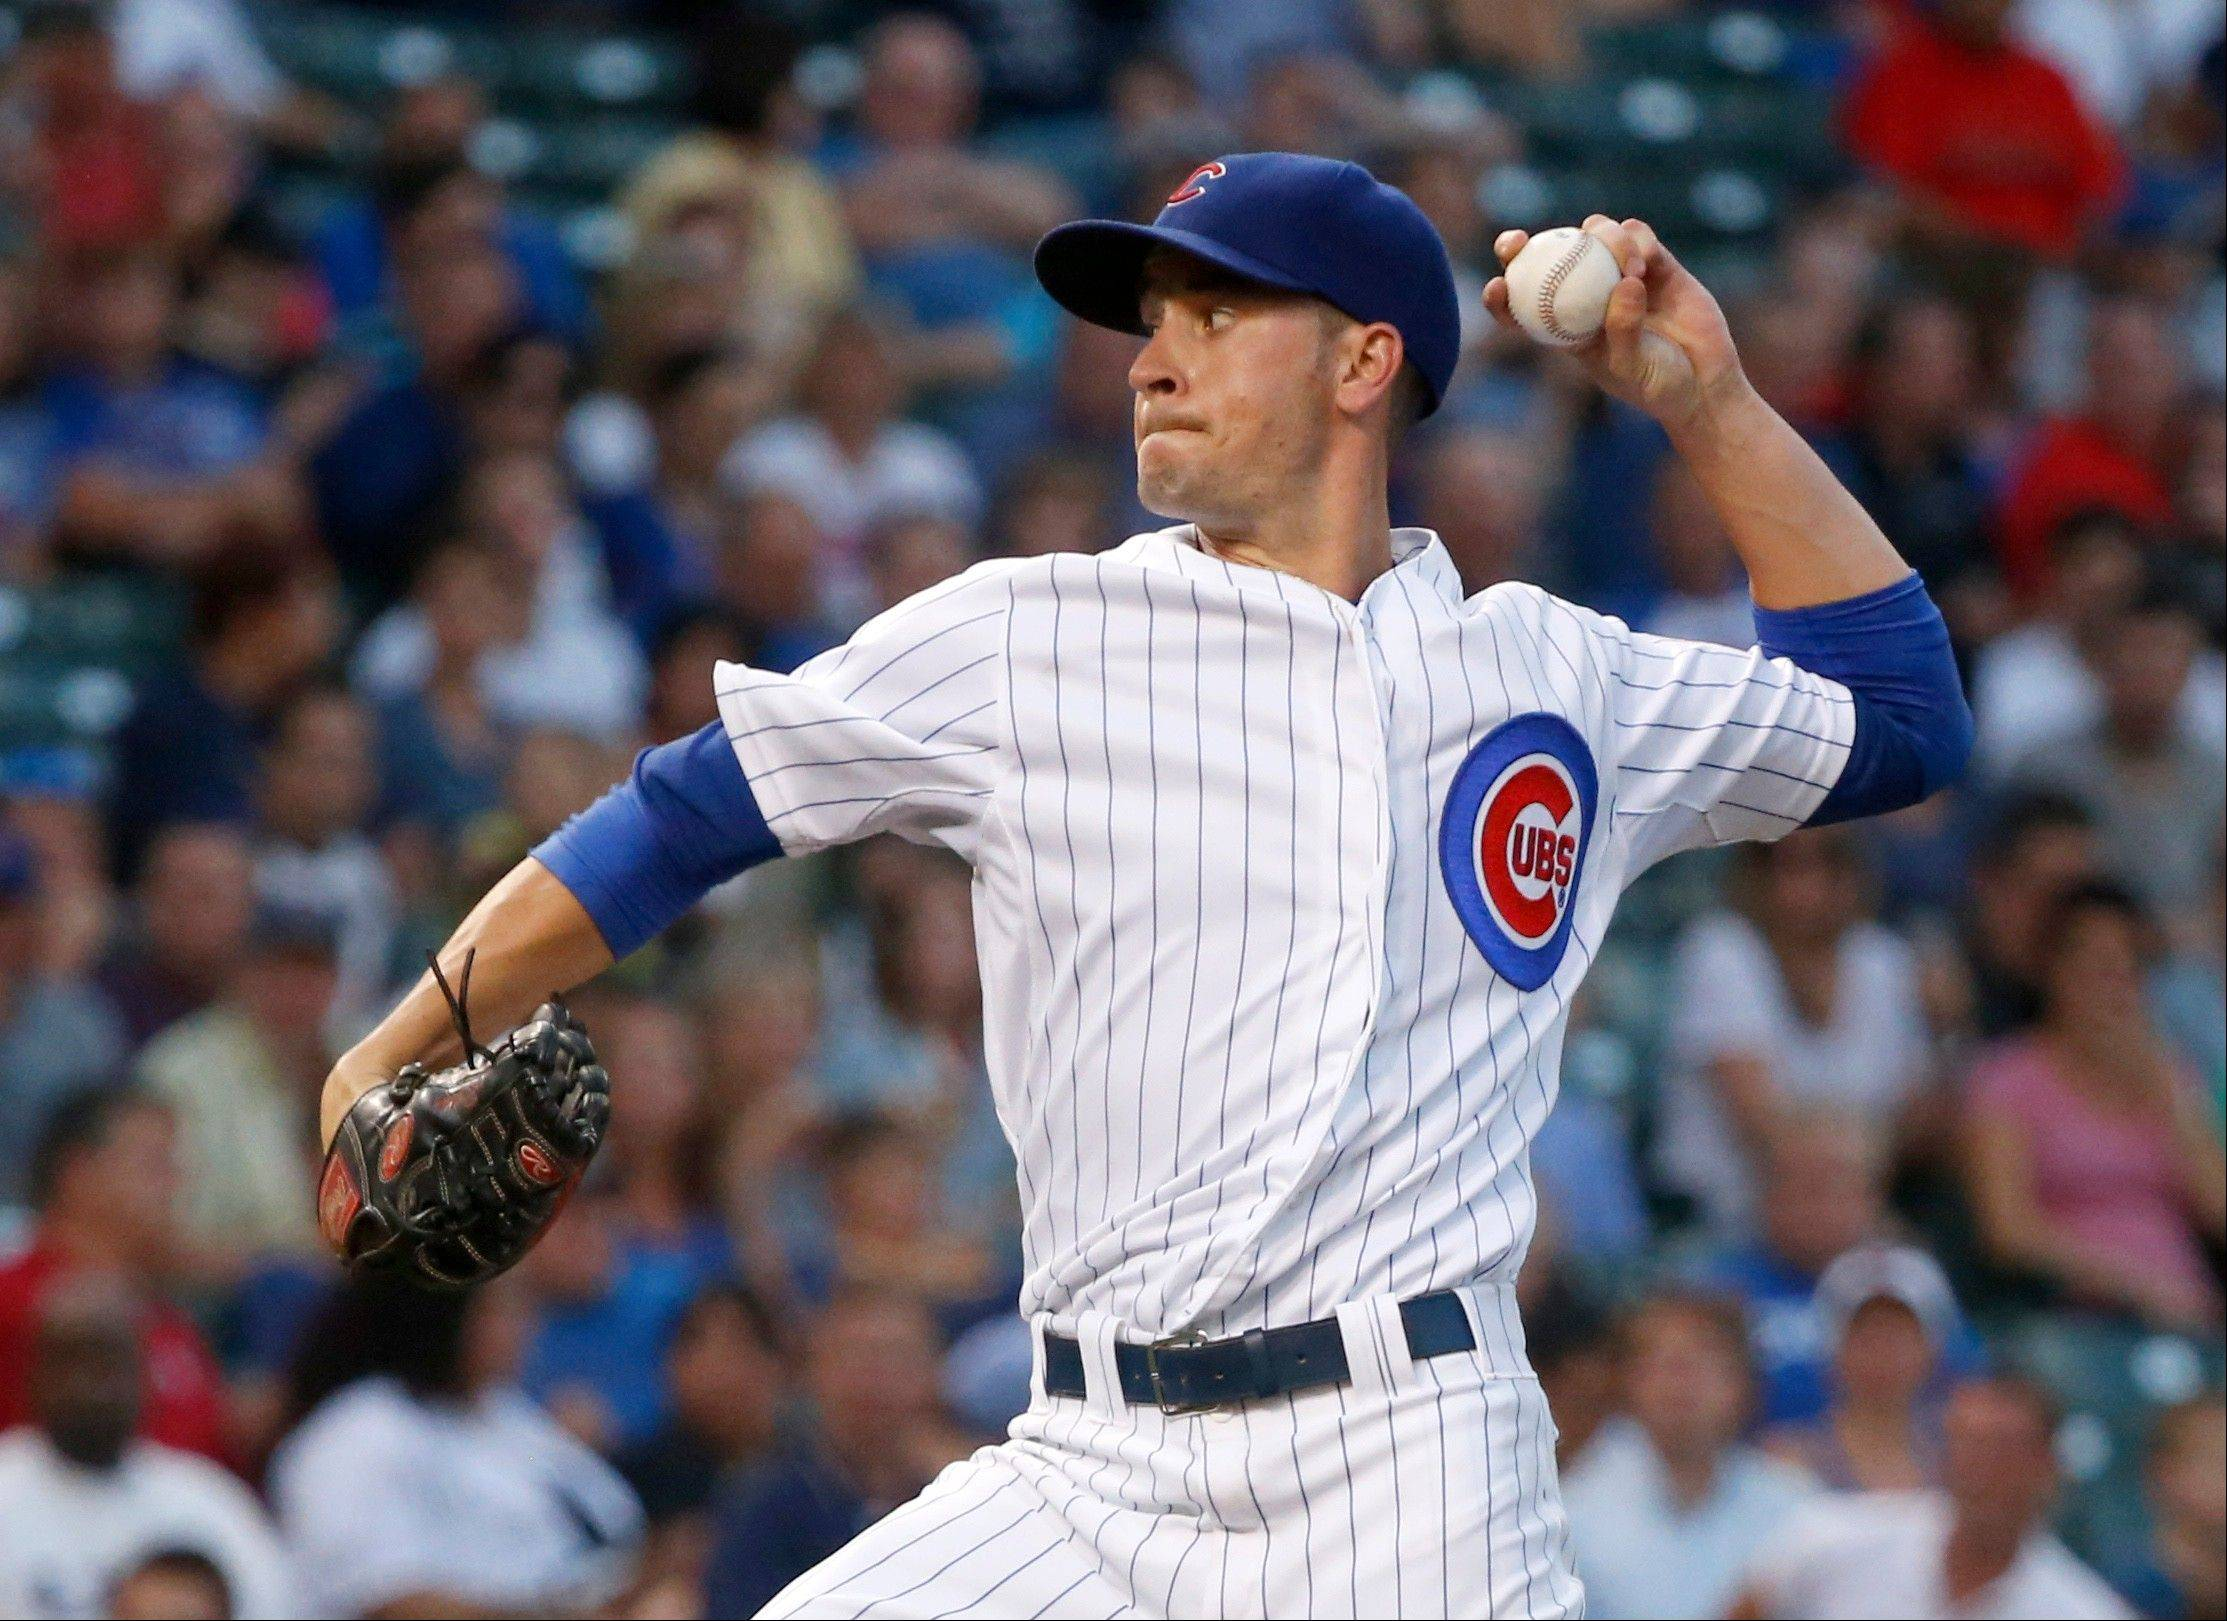 Cubs starting pitcher Chris Rusin gave up 2 runs on 10 hits and saw his record drop to 2-3 with Tuesday night's loss to the Nationals.